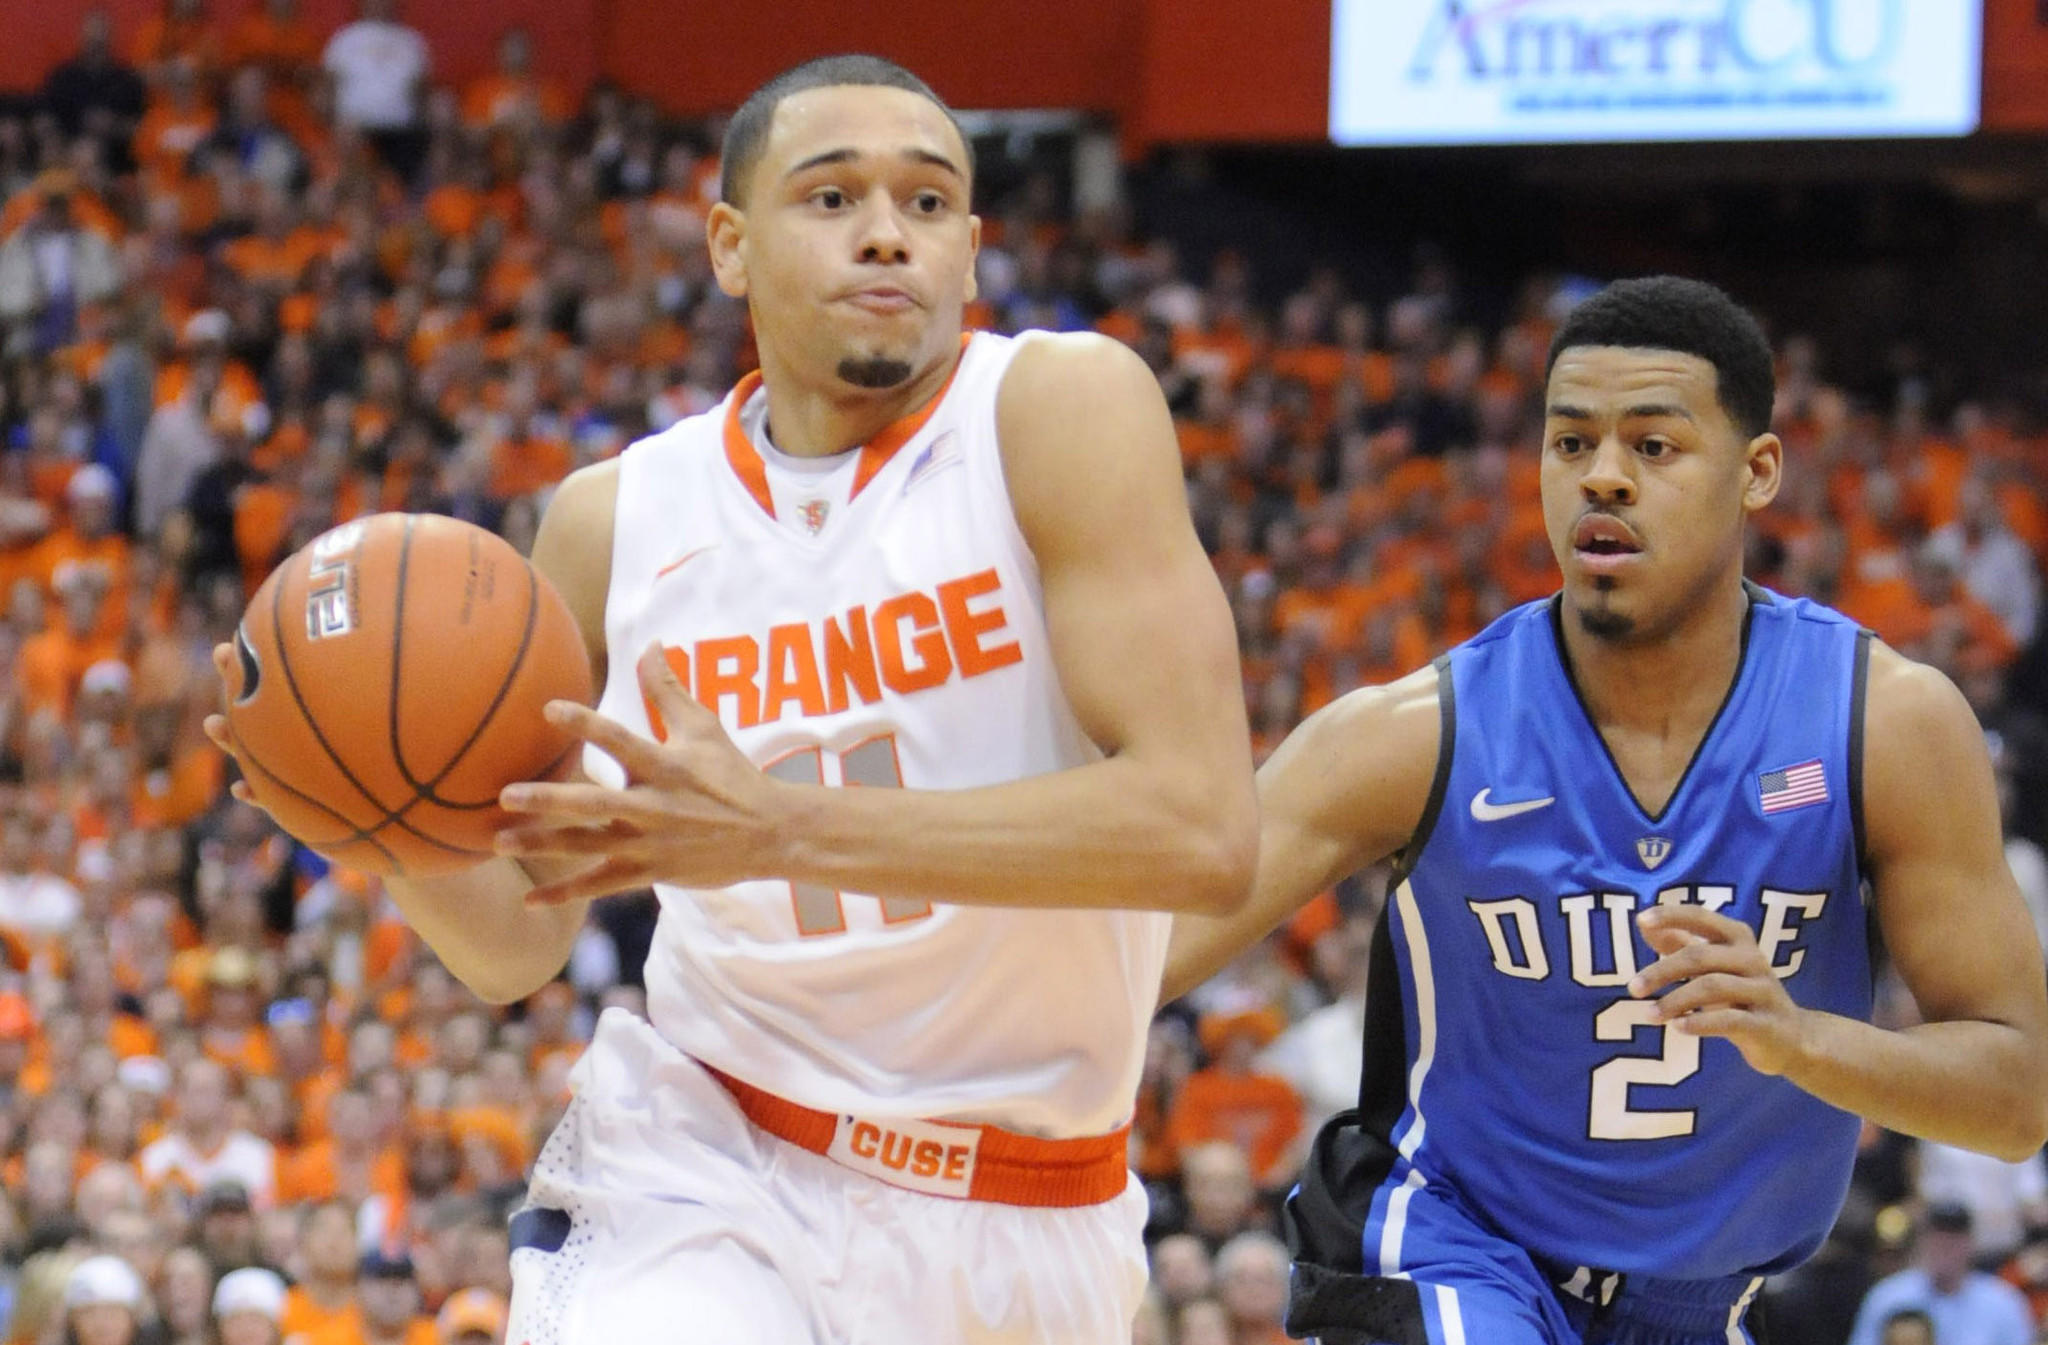 Syracuse's Tyler Ennis drives the ball past Duke's Quinn Cook during the first half.